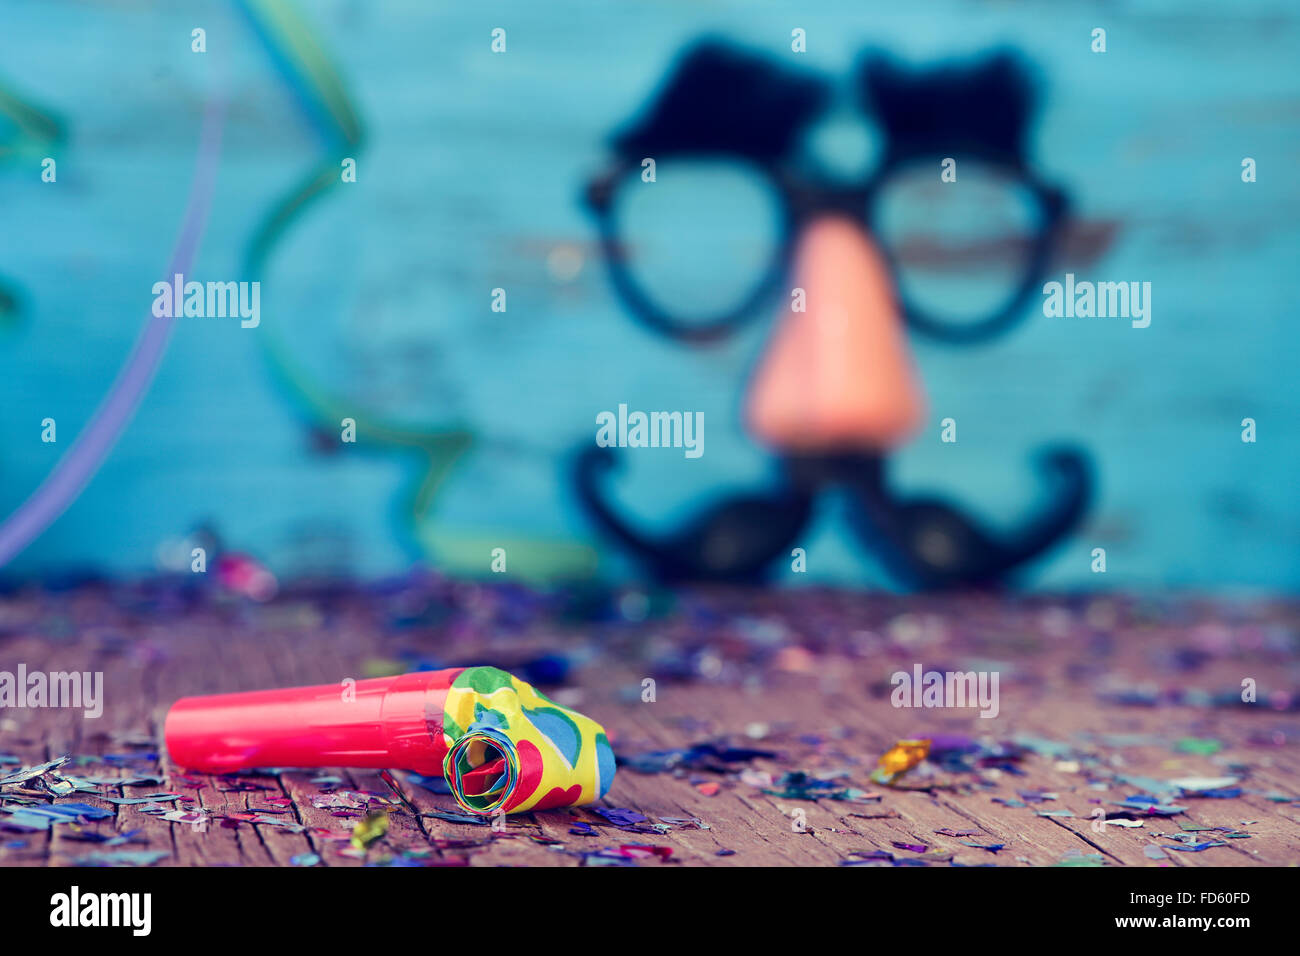 closeup of a party horns on a wooden surface full of confetti and streamers, and a pair of fake black glasses with - Stock Image